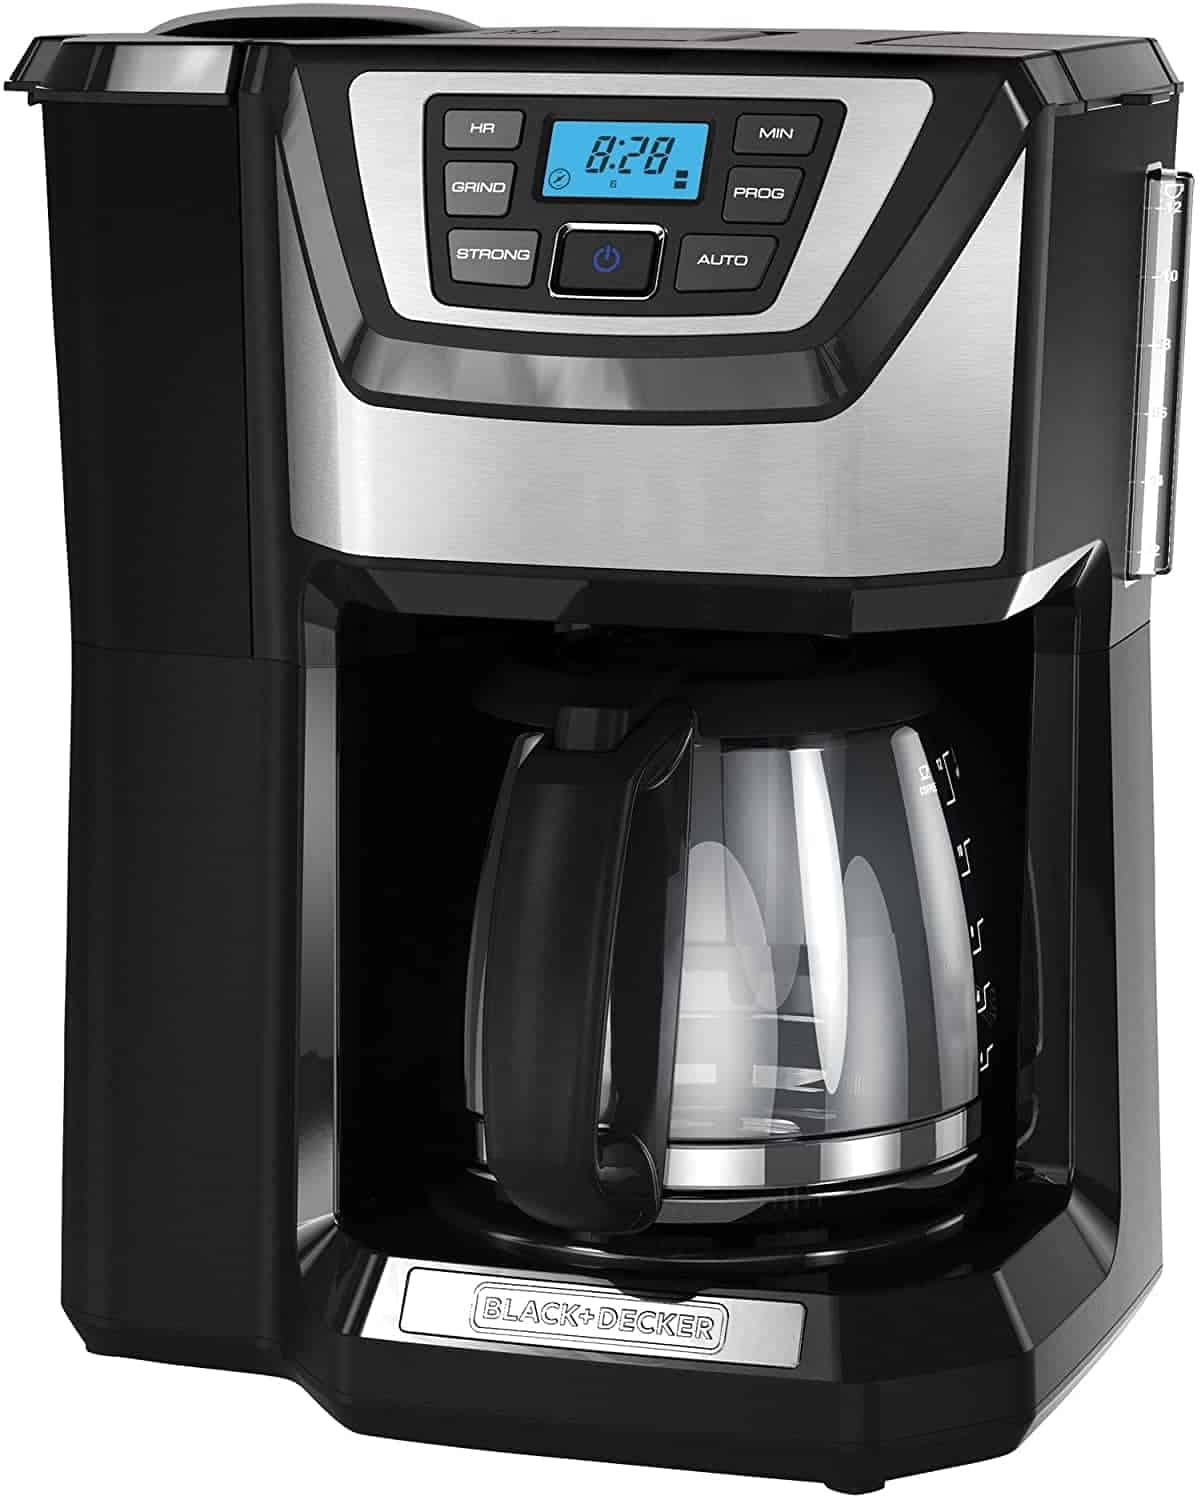 Black+Decker Coffee Maker with Grinder